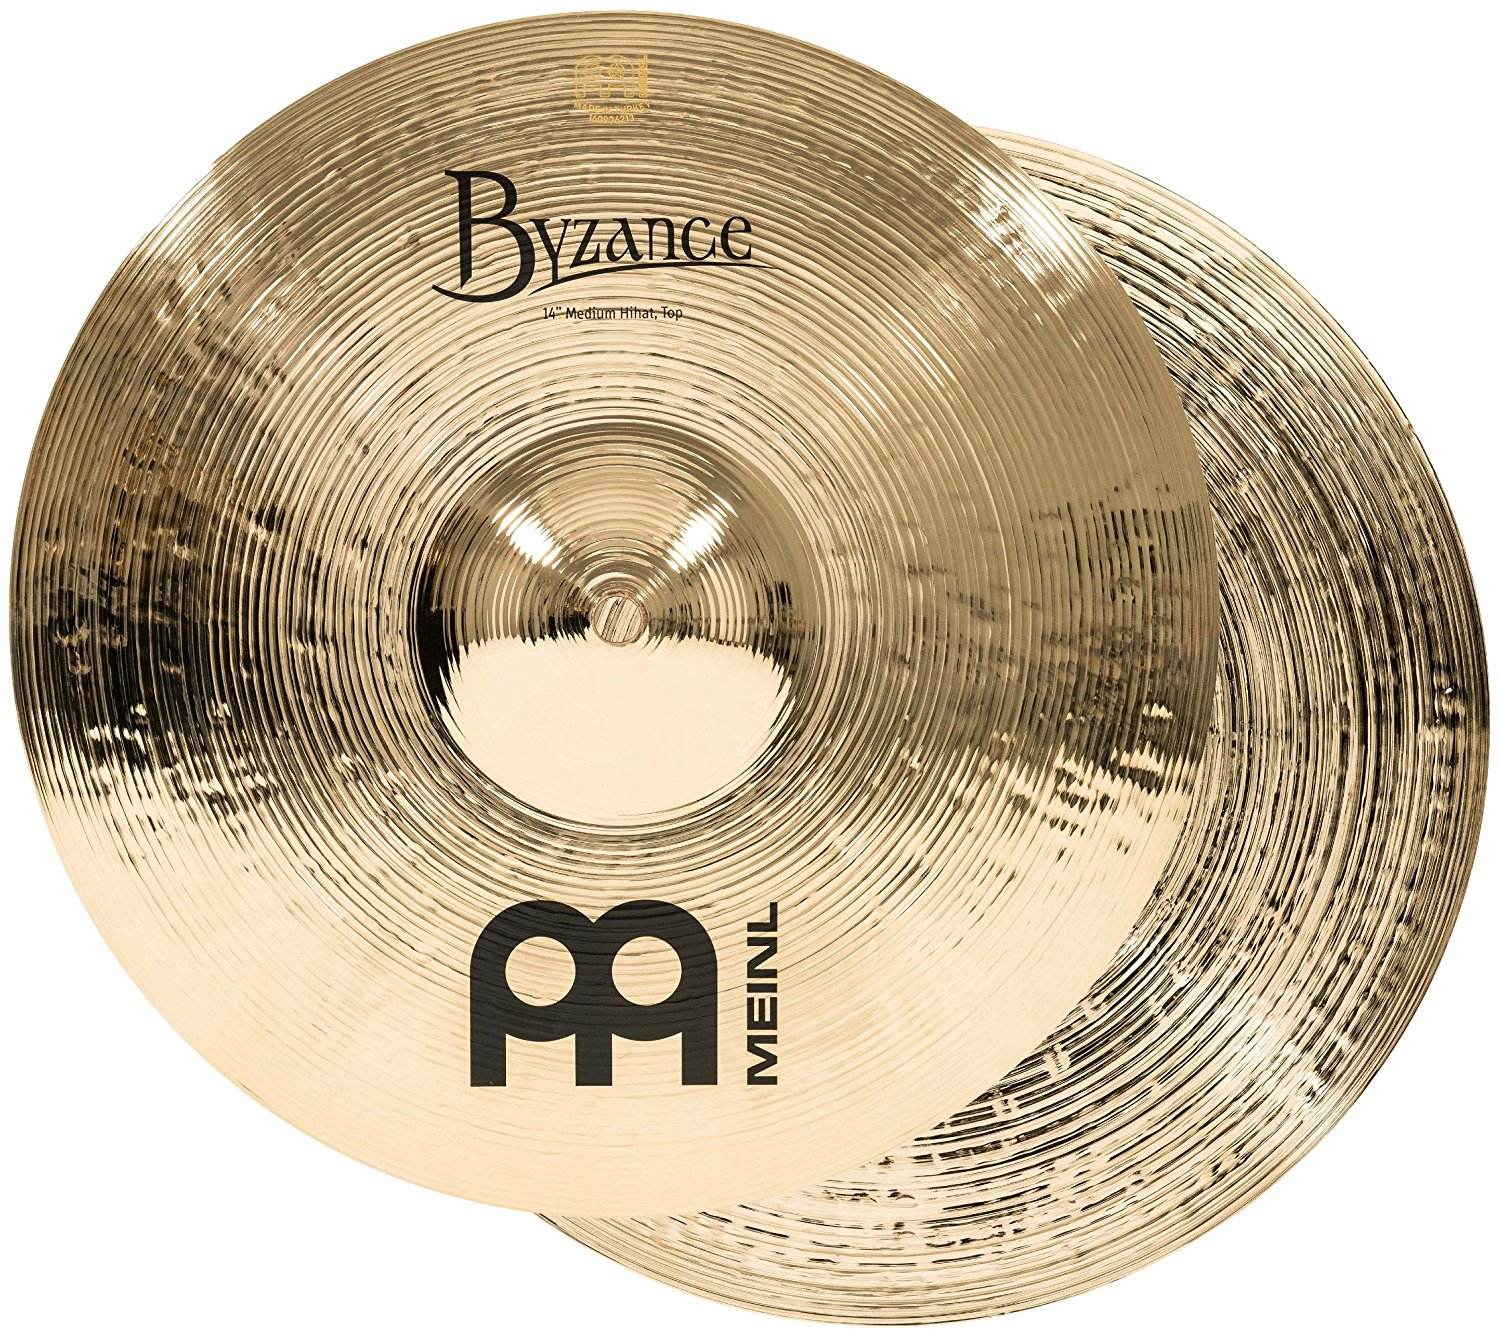 OFFICIAL TWO YEAR MEINL WARRANTY  All Meinl cymbals carry a two-year  manufacturer s warranty when purchased from authorized retailers. 4a68581f10